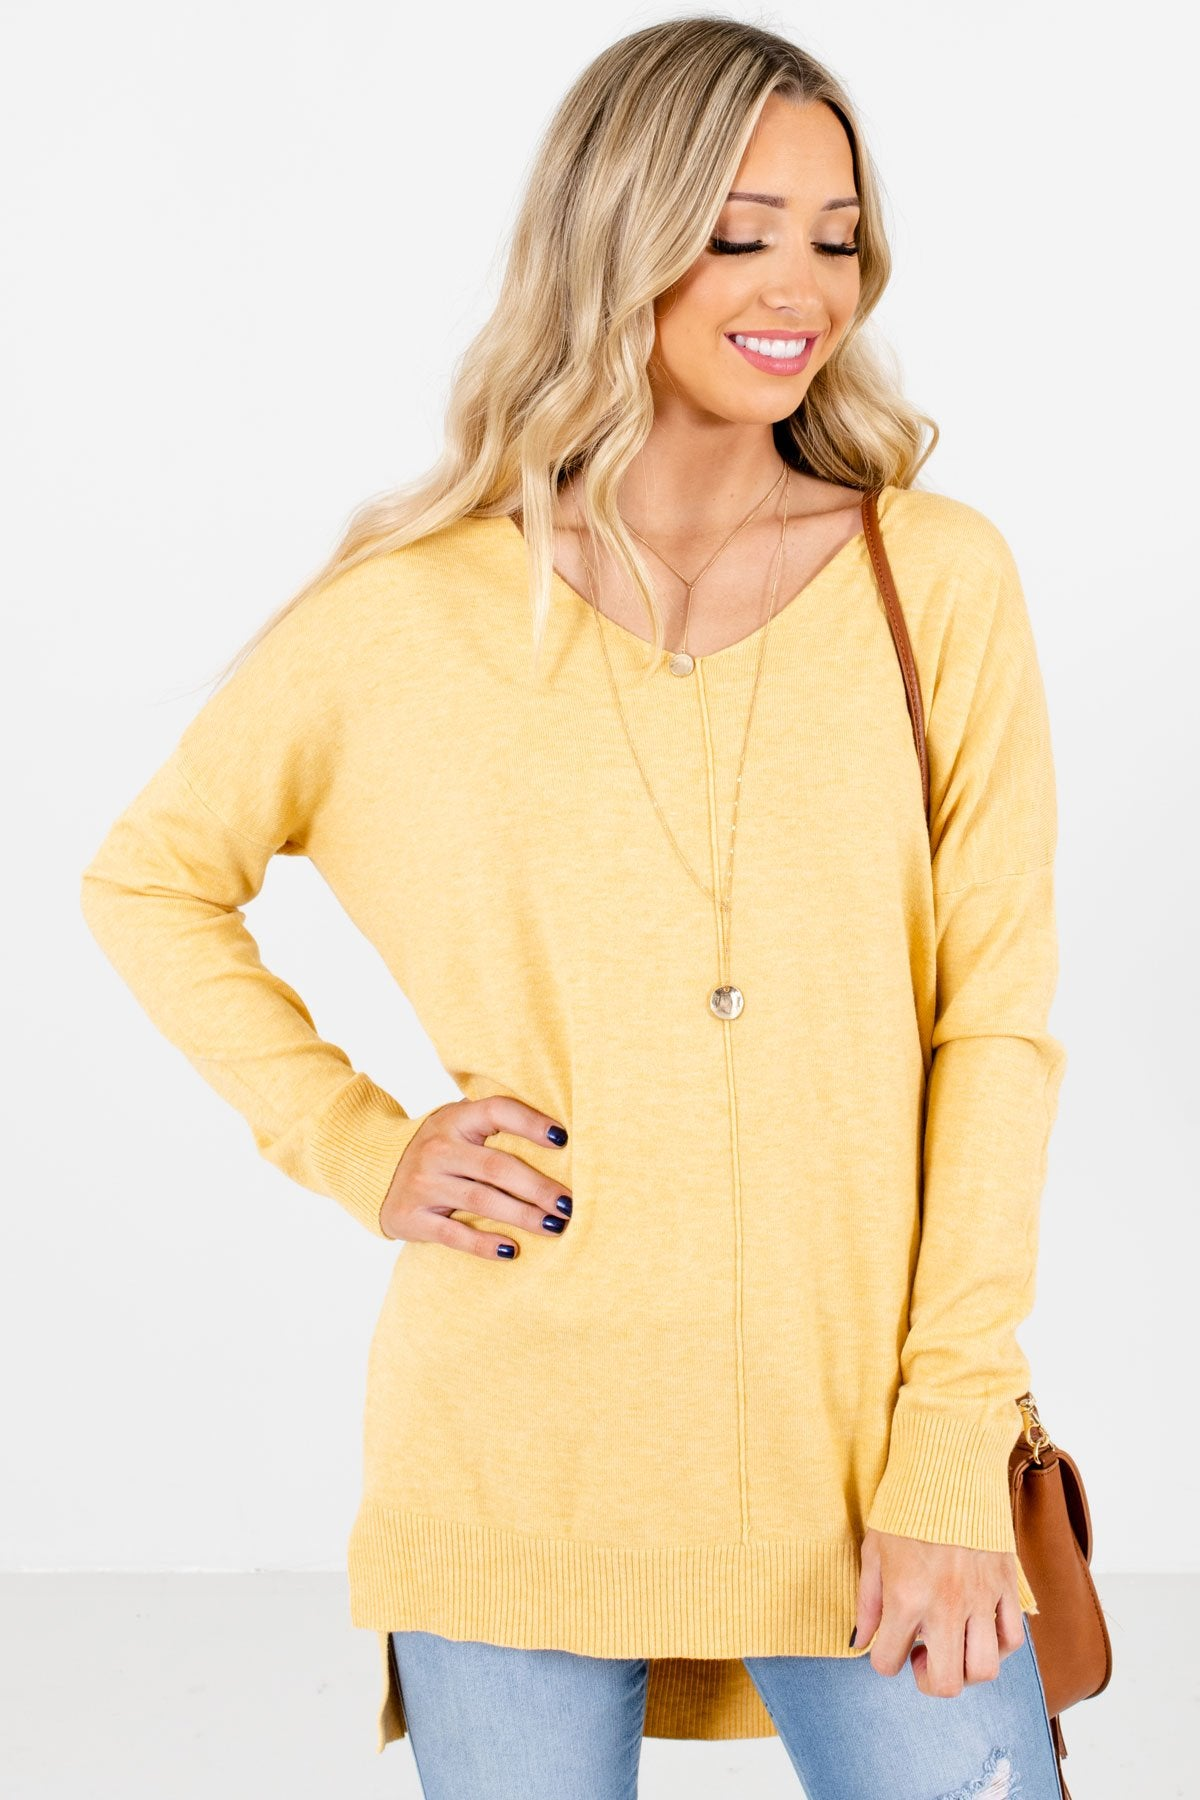 Yellow V-Neckline Boutique Sweaters for Women